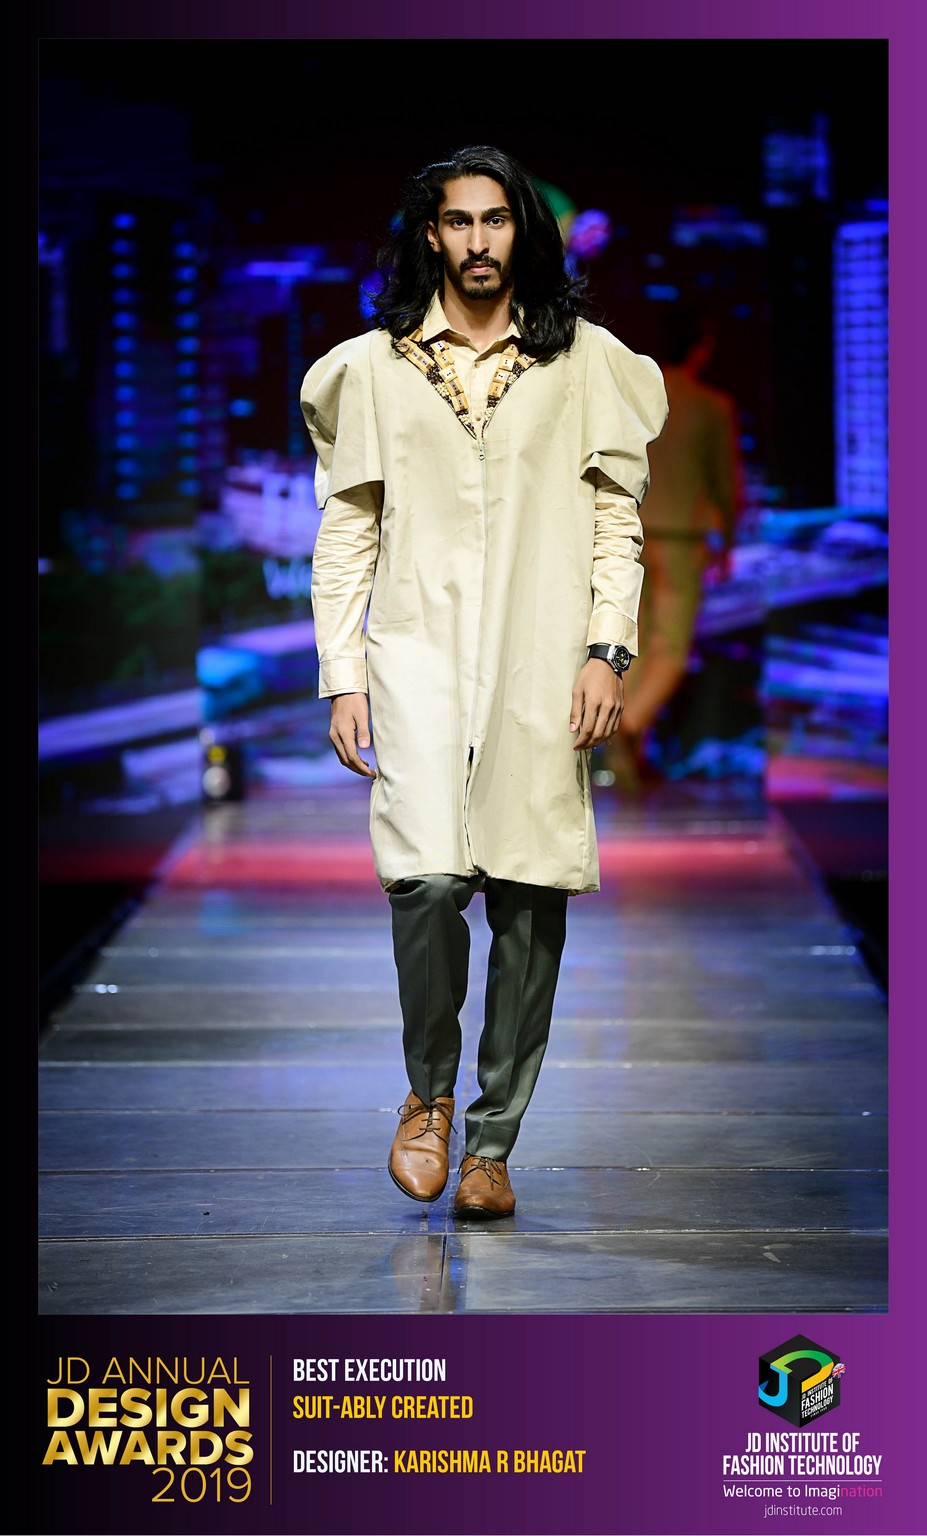 SUIT-ABLY CREATED - CURATOR - JDADA2019 suit-ably created - SUIT ABLY CREATED 10 1 - SUIT-ABLY CREATED – CURATOR – JDADA2019